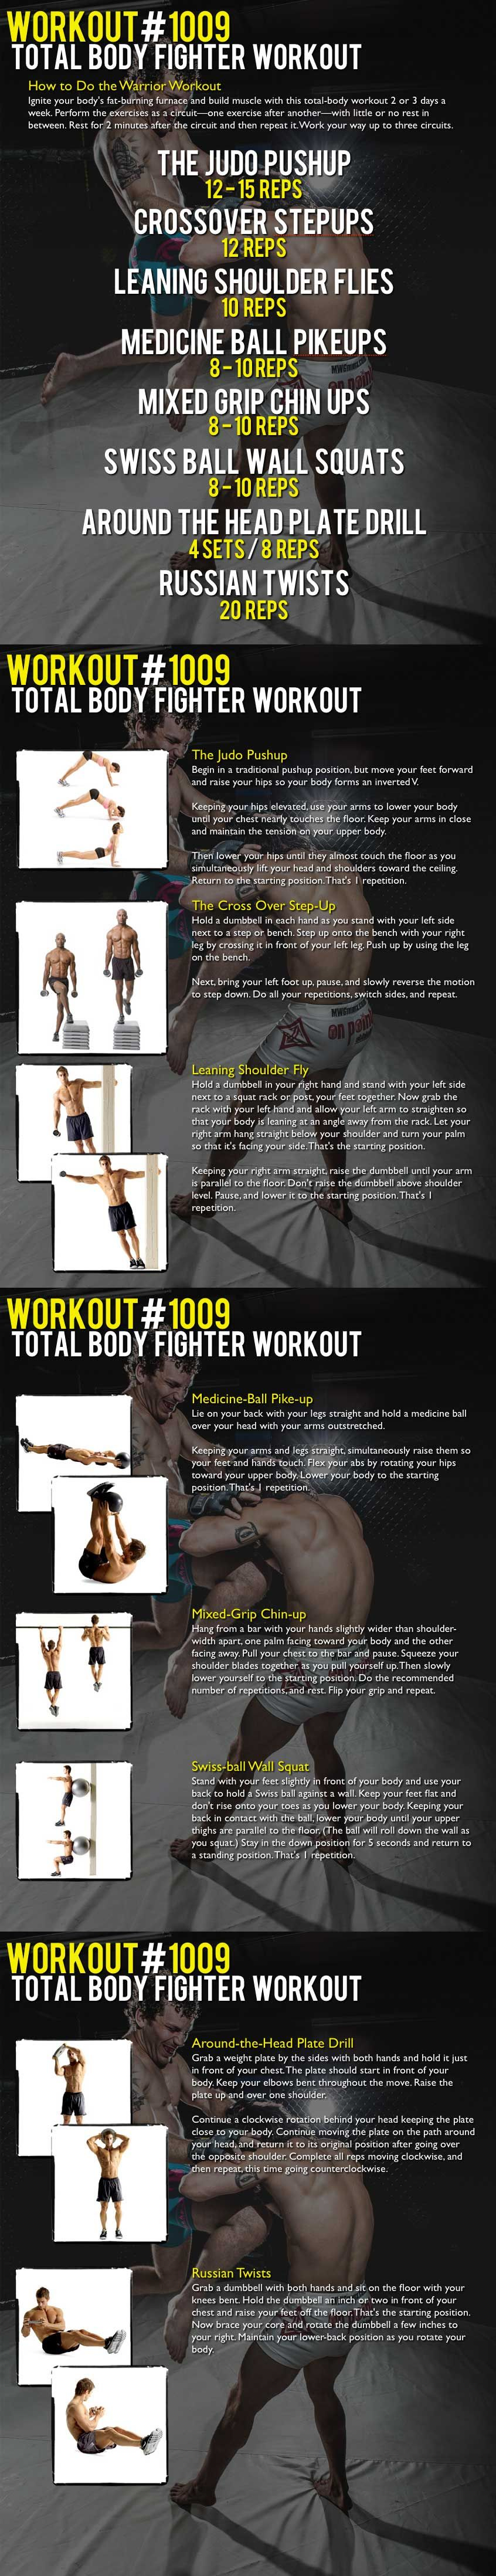 here is a workout for the MMA fighter in you. Although